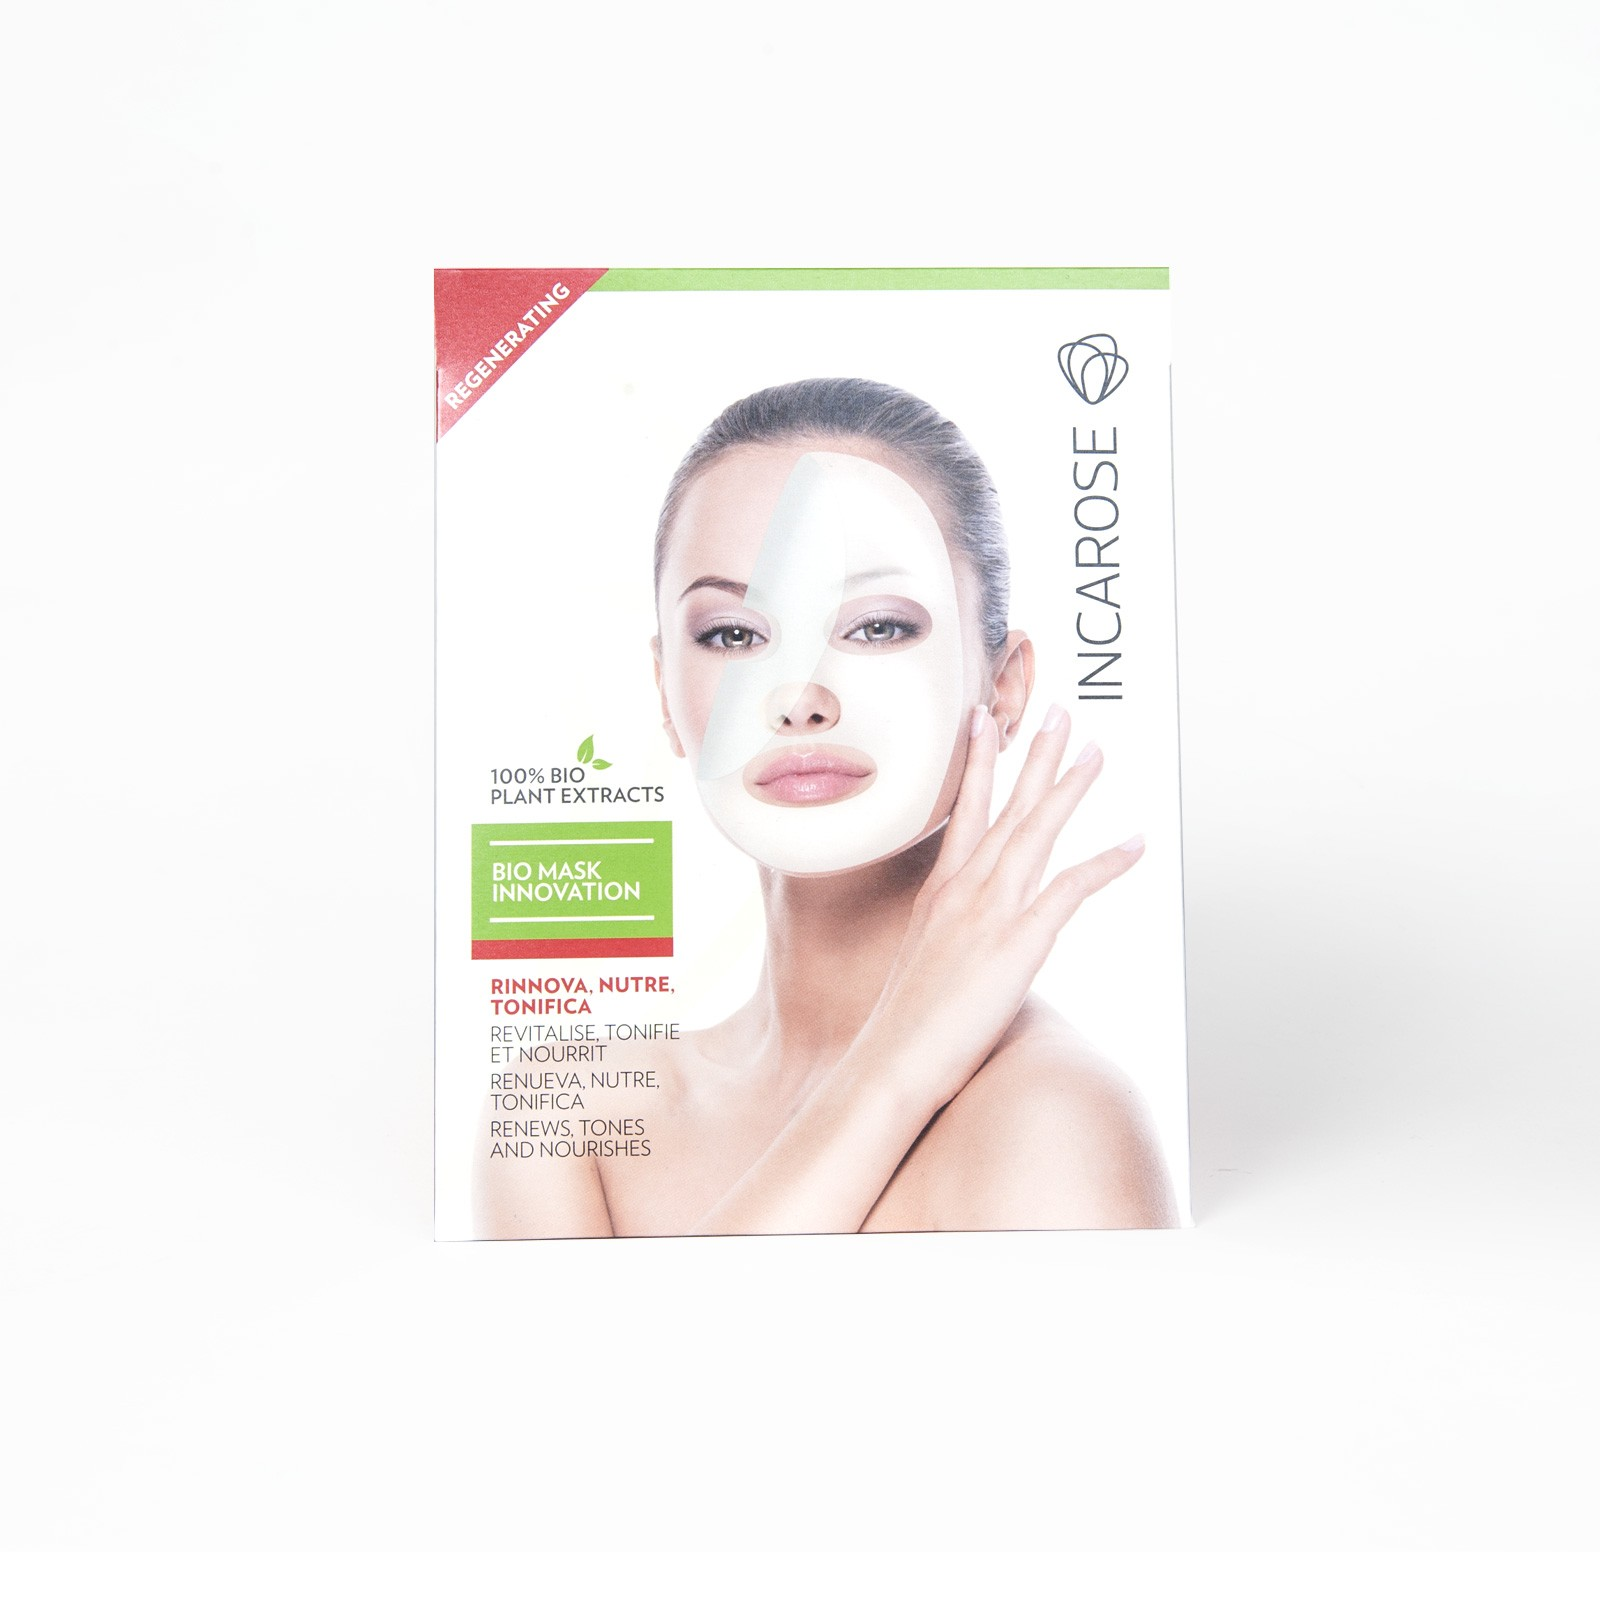 BIO MASK INNOVATION - Regenerating